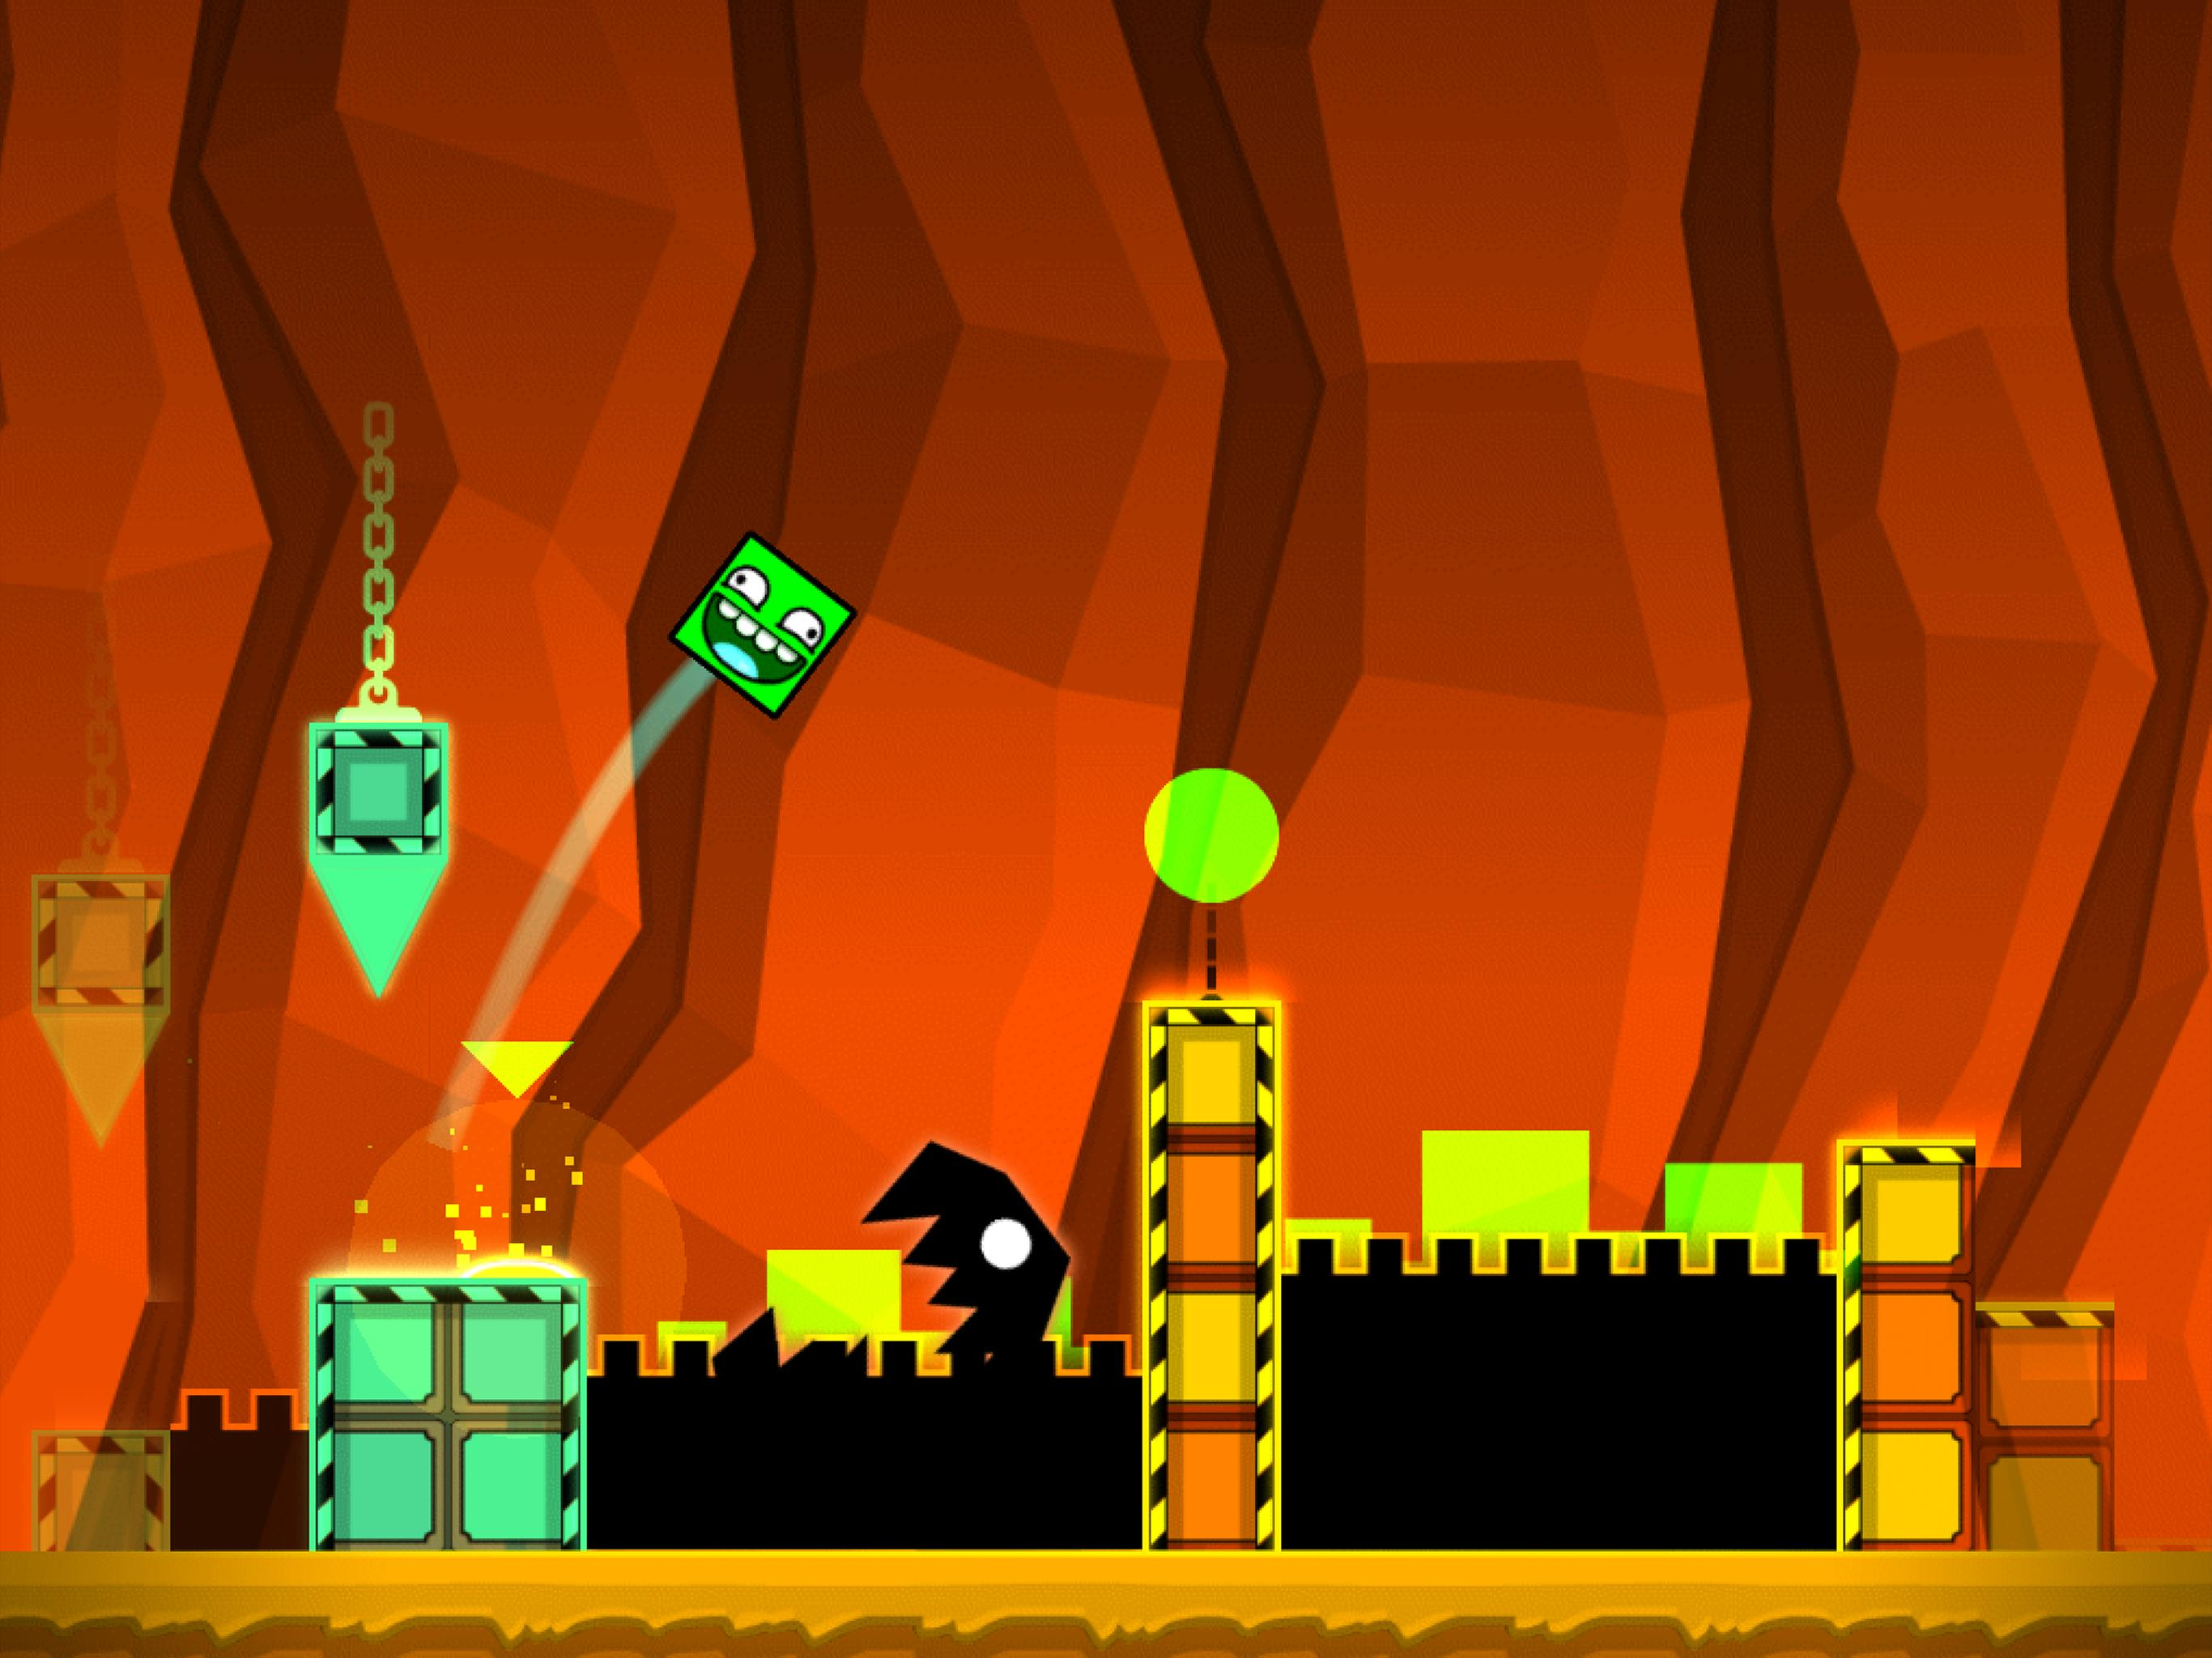 geometry dash 2.12 apk free download